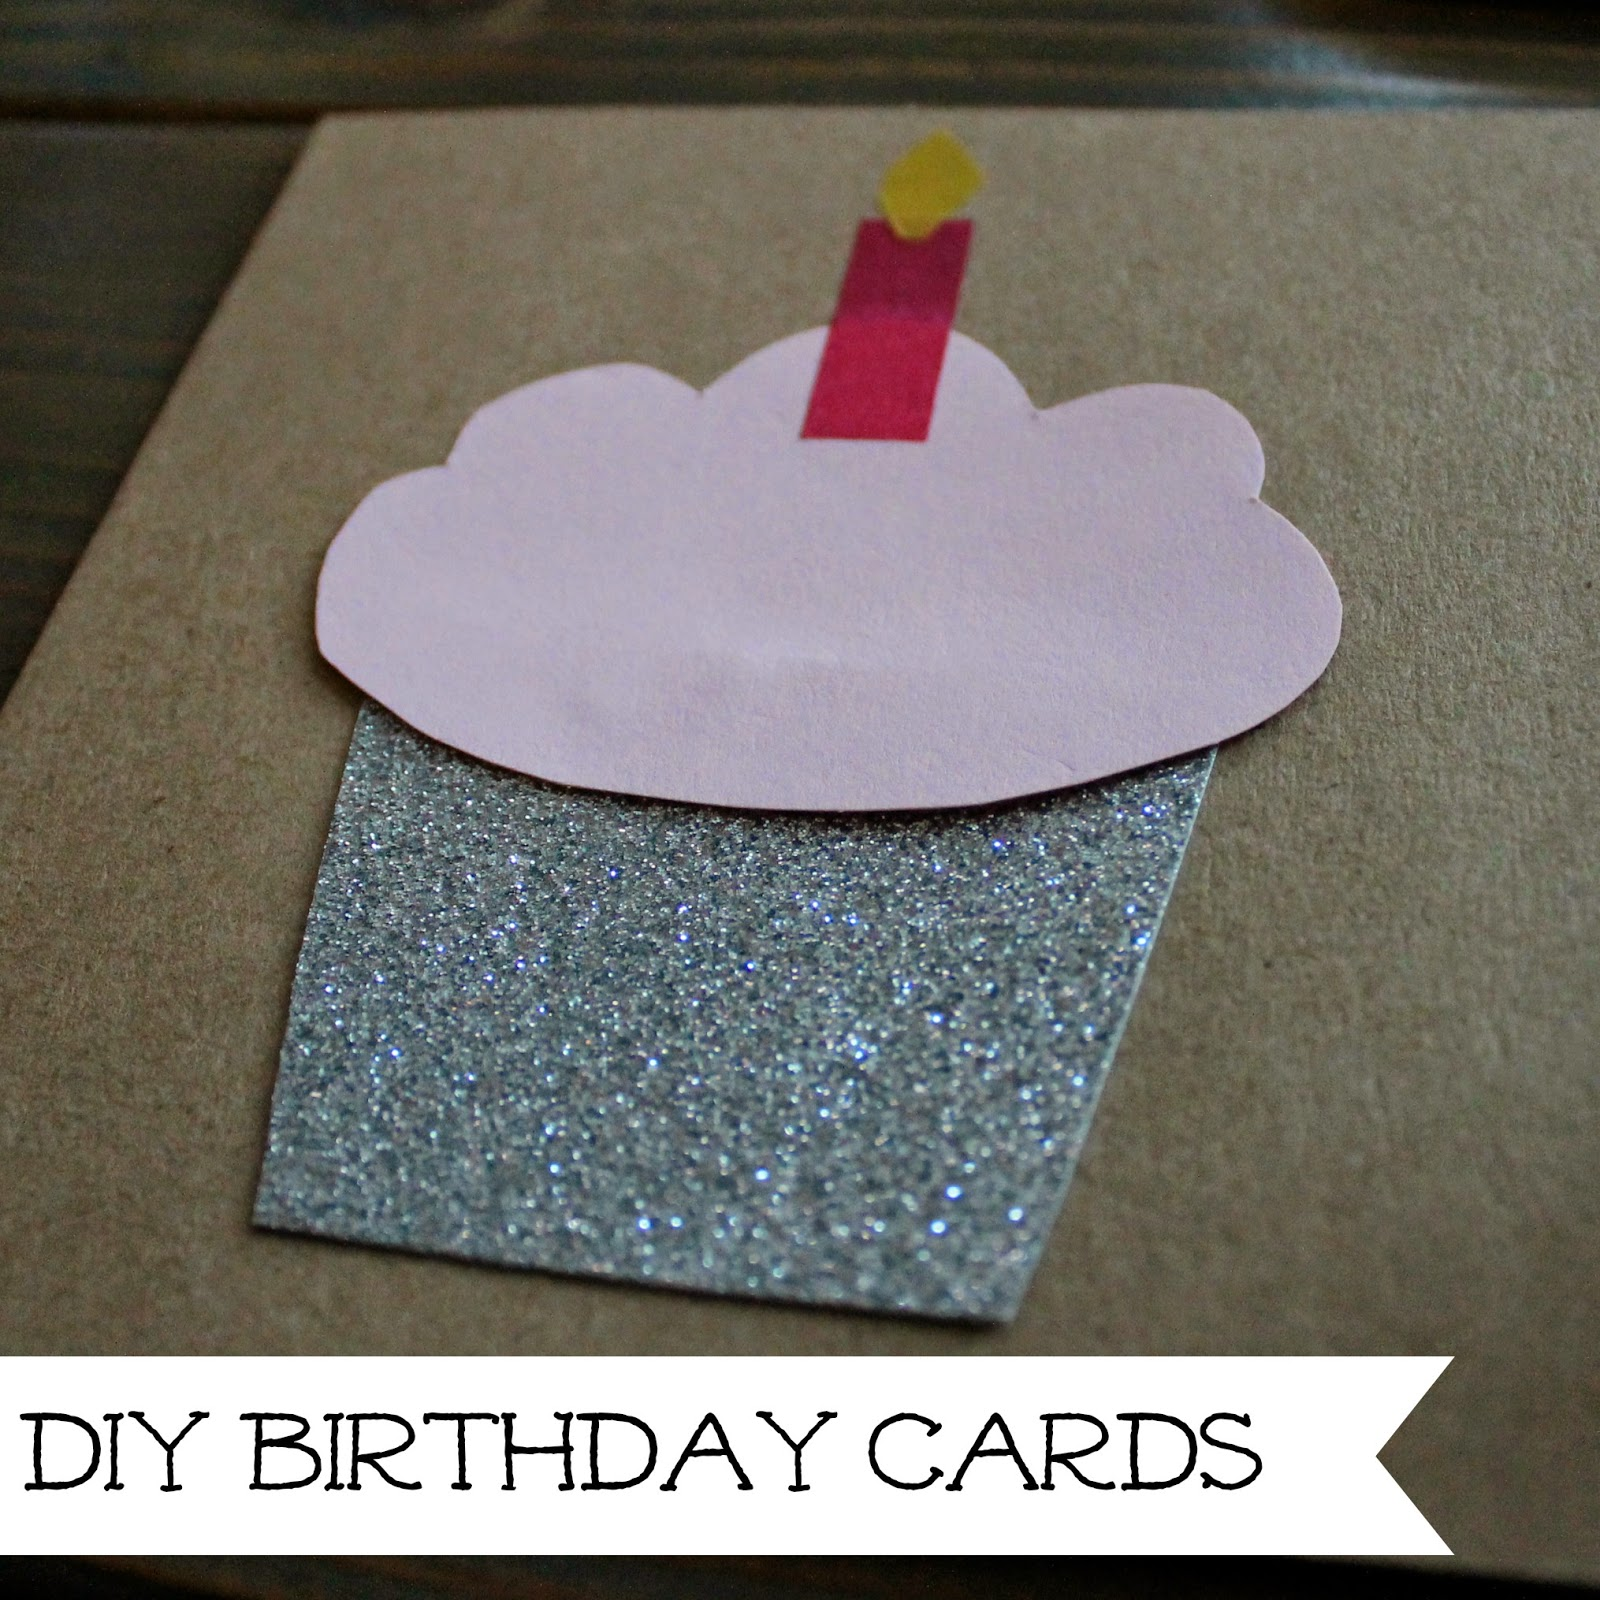 http://wonderfullymadebyleslie.blogspot.com/2014/01/diy-birthday-cards.html